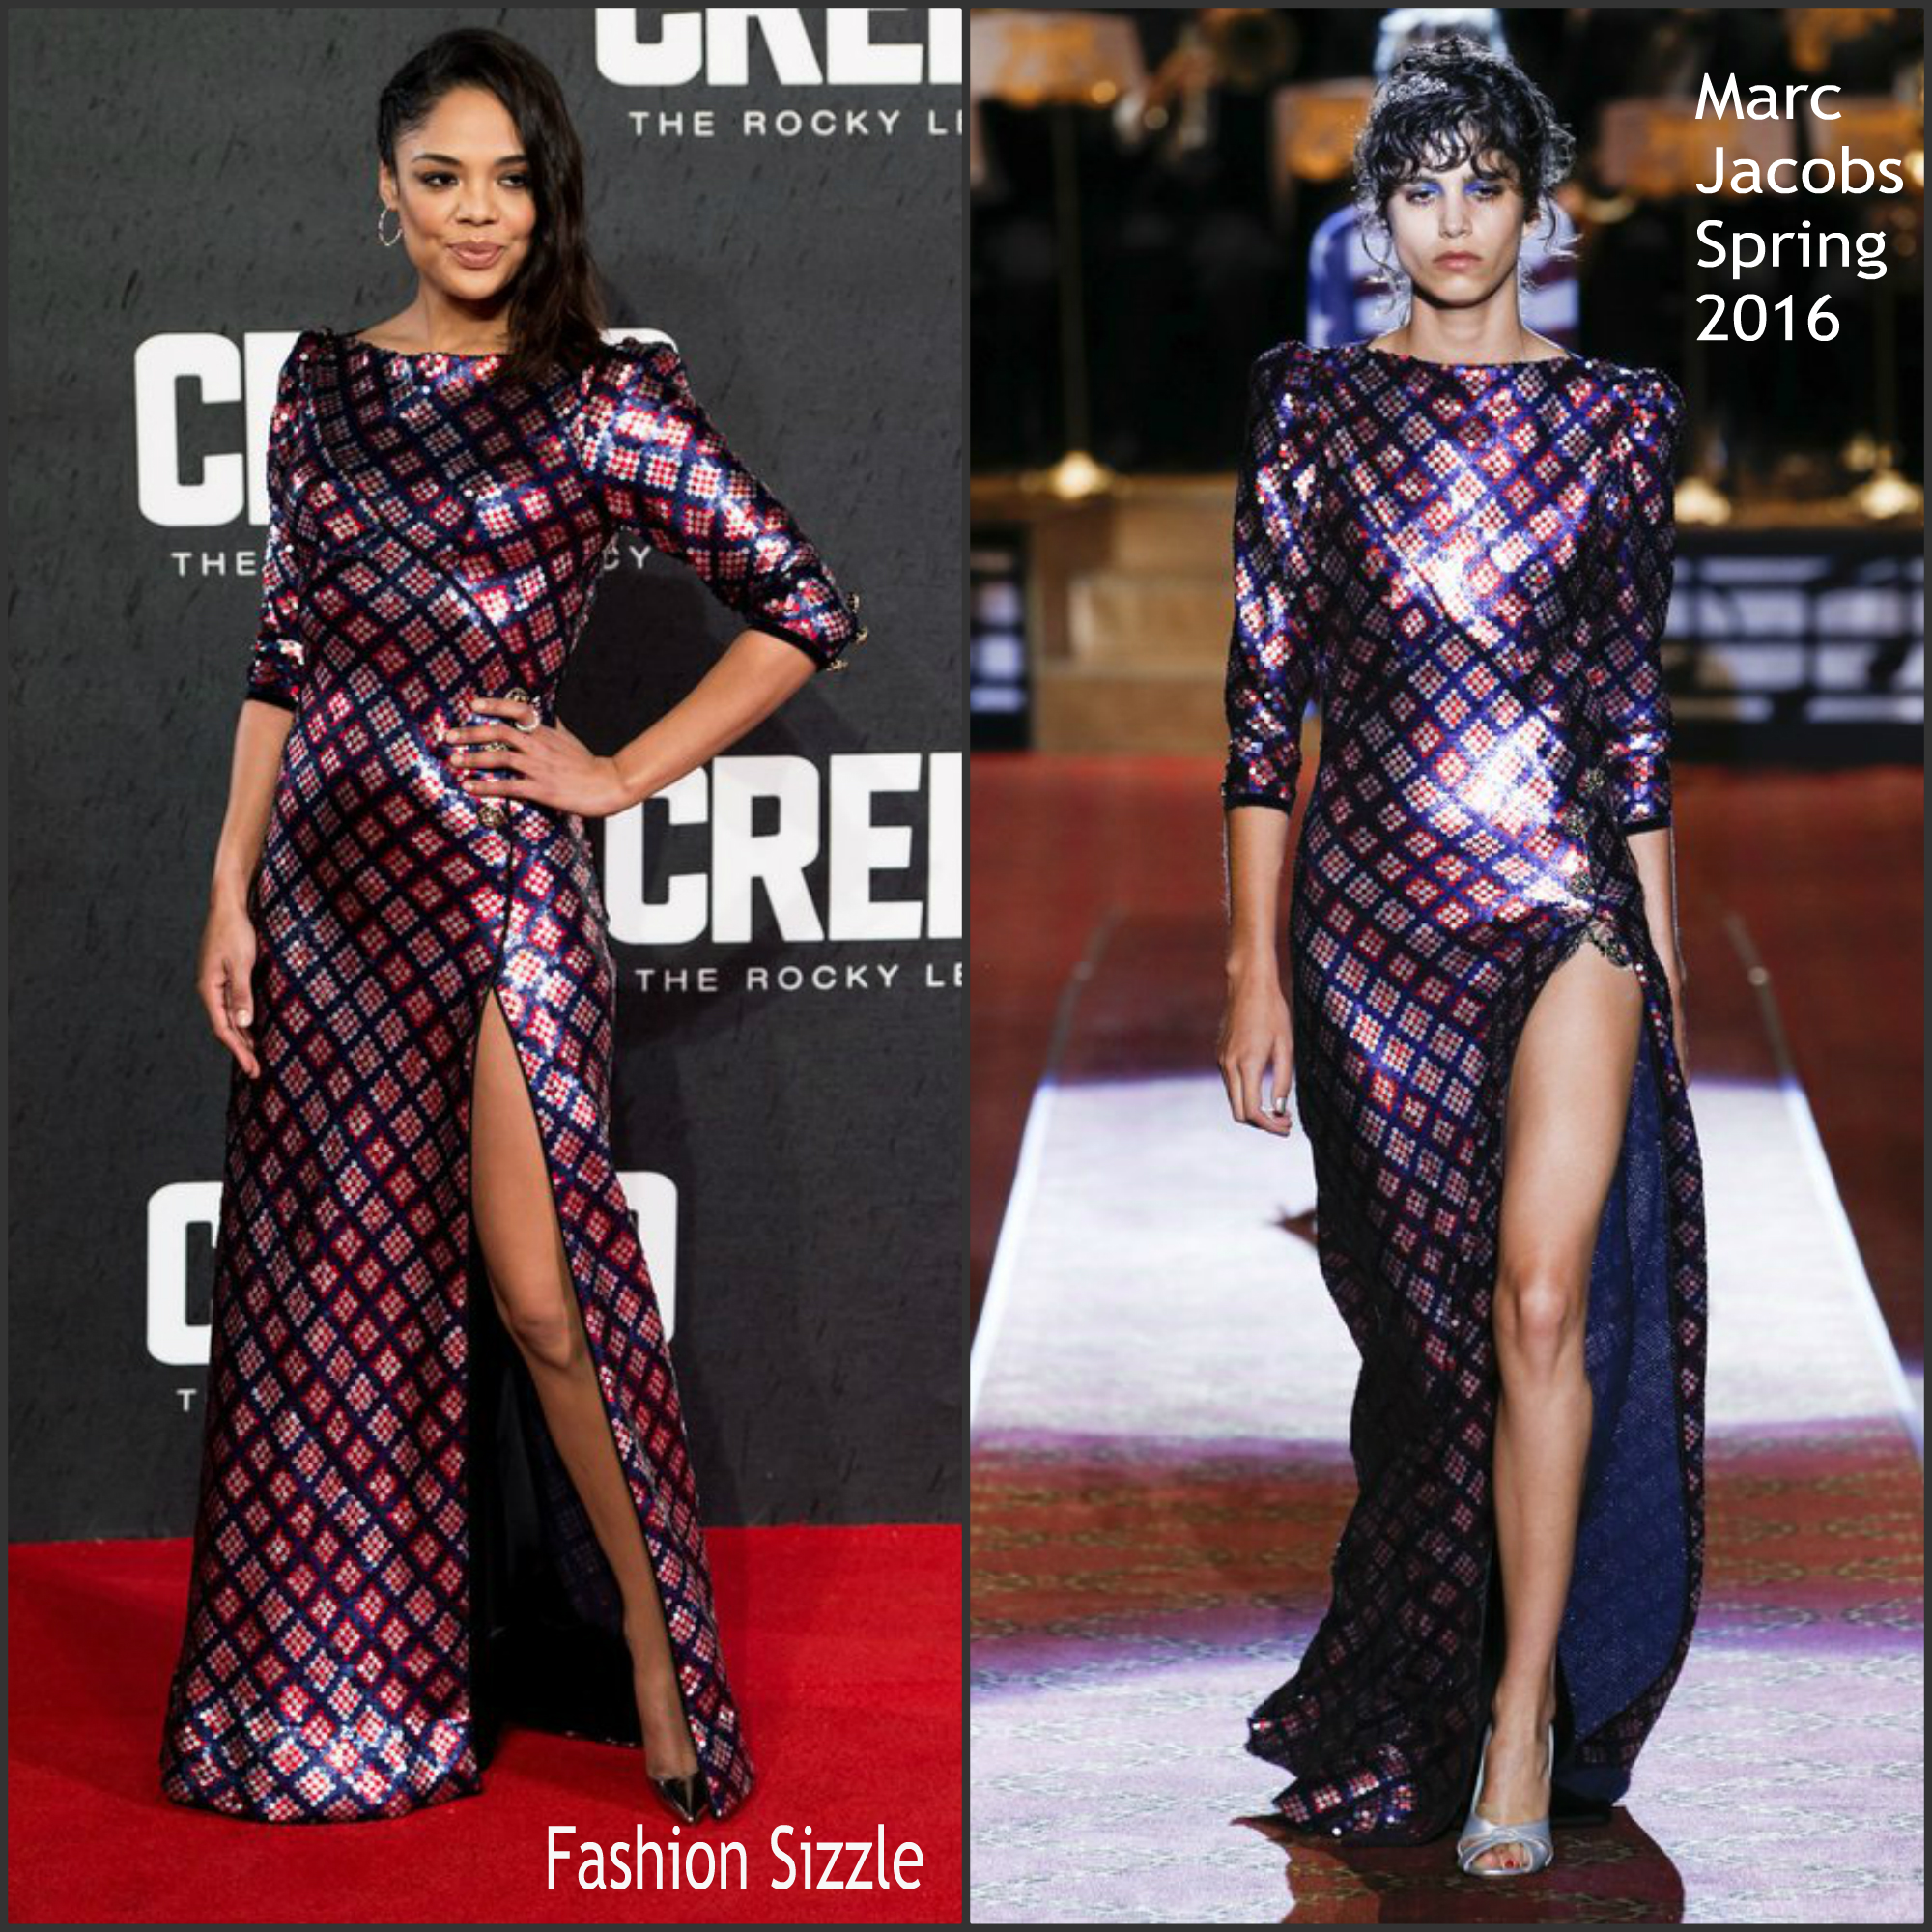 tessa-thompson-in-marc-jacobs-creed-london-premiere